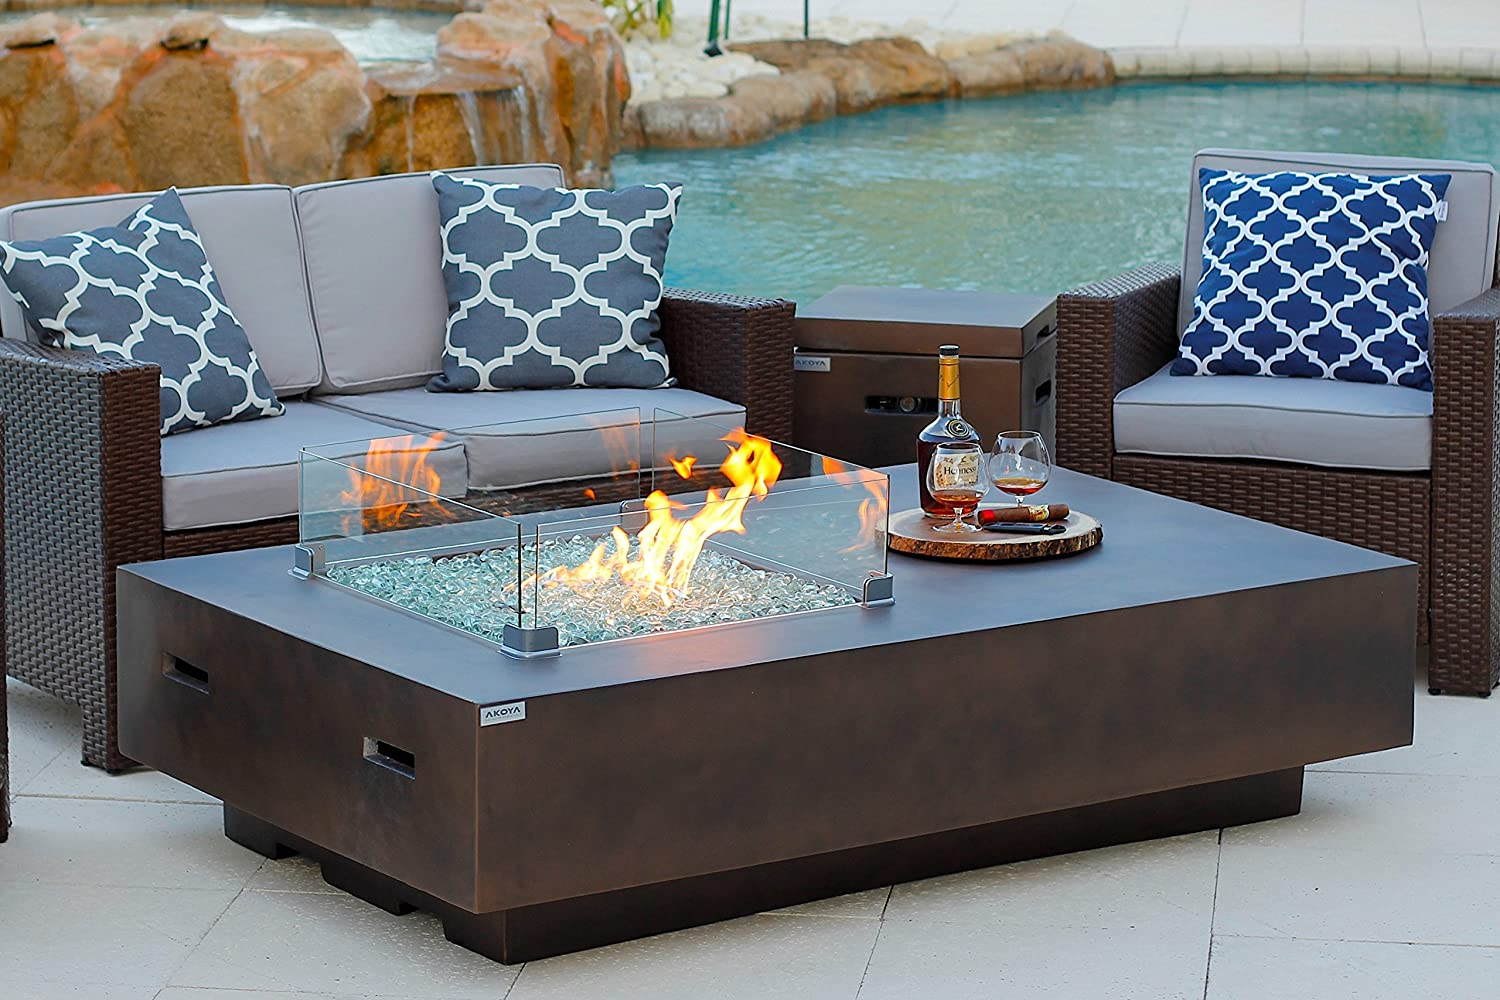 AKOYA Outdoor Essentials 65 Rectangular Modern Concrete Fire Pit Table w Glass Guard and Crystals in Brown 65 Brown, Caribbean Blue